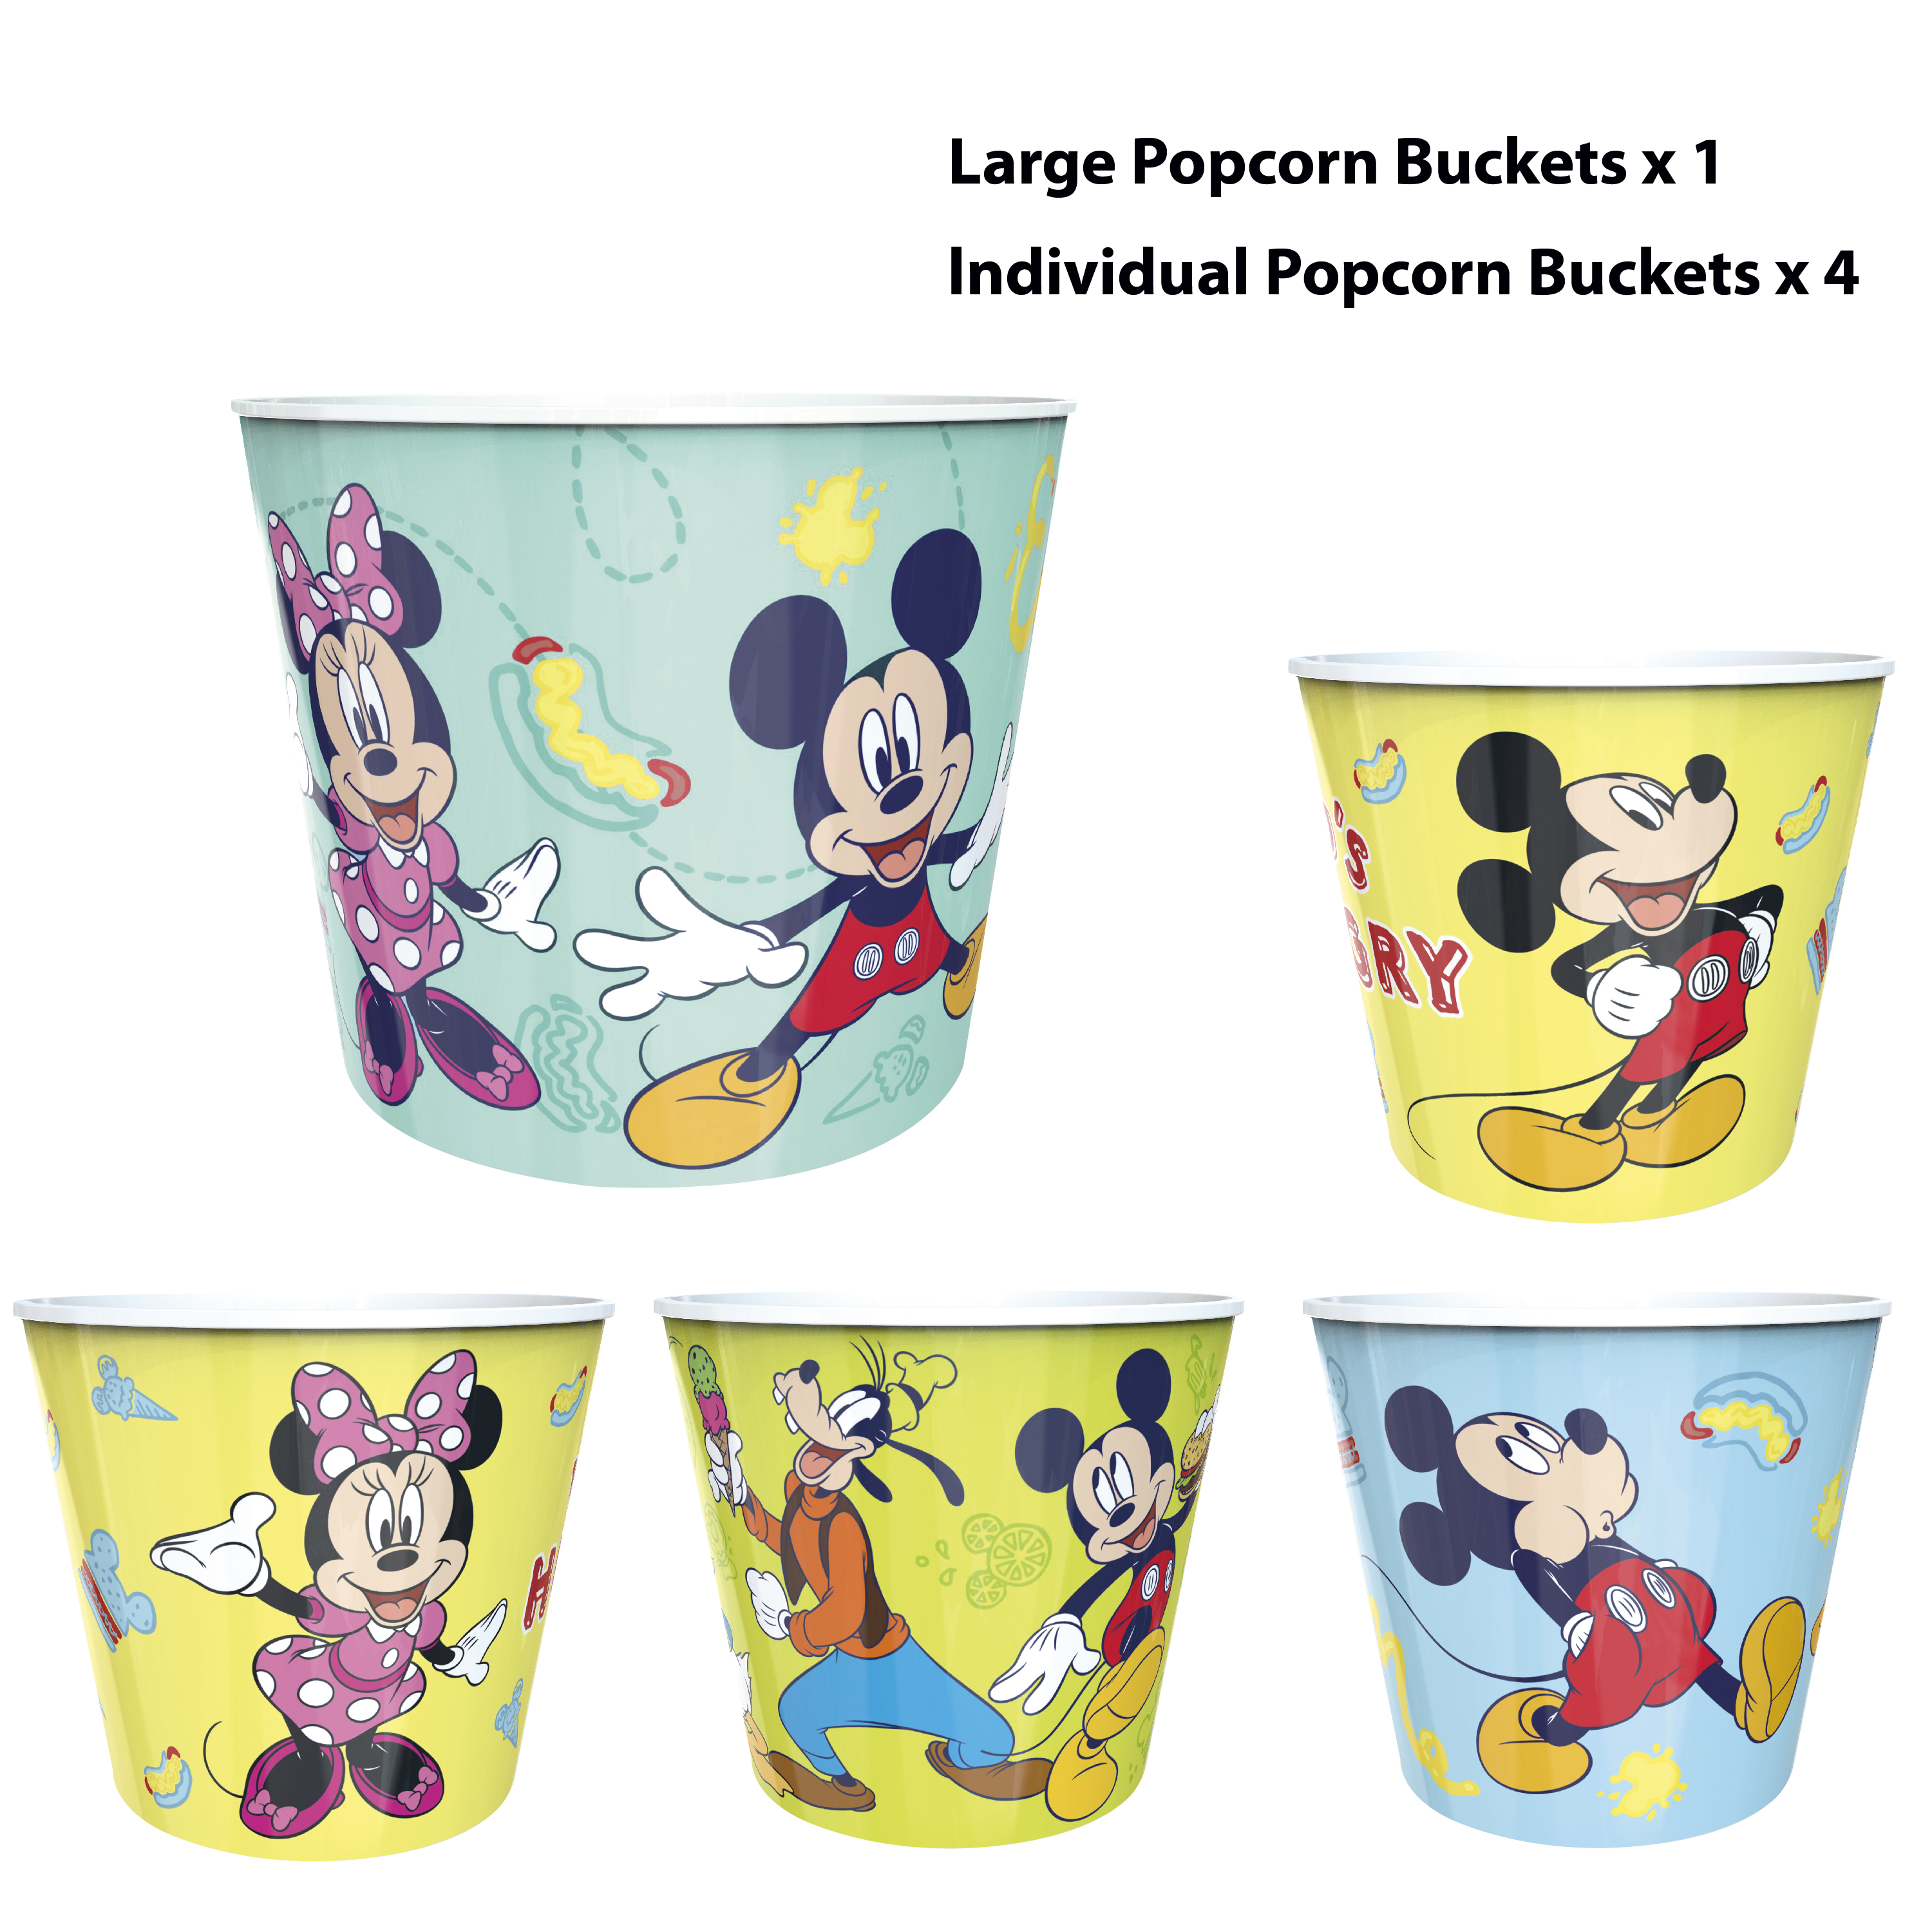 Disney Plastic Popcorn Container and Bowls, Mickey Mouse and Minnie Mouse, 5-piece set slideshow image 12